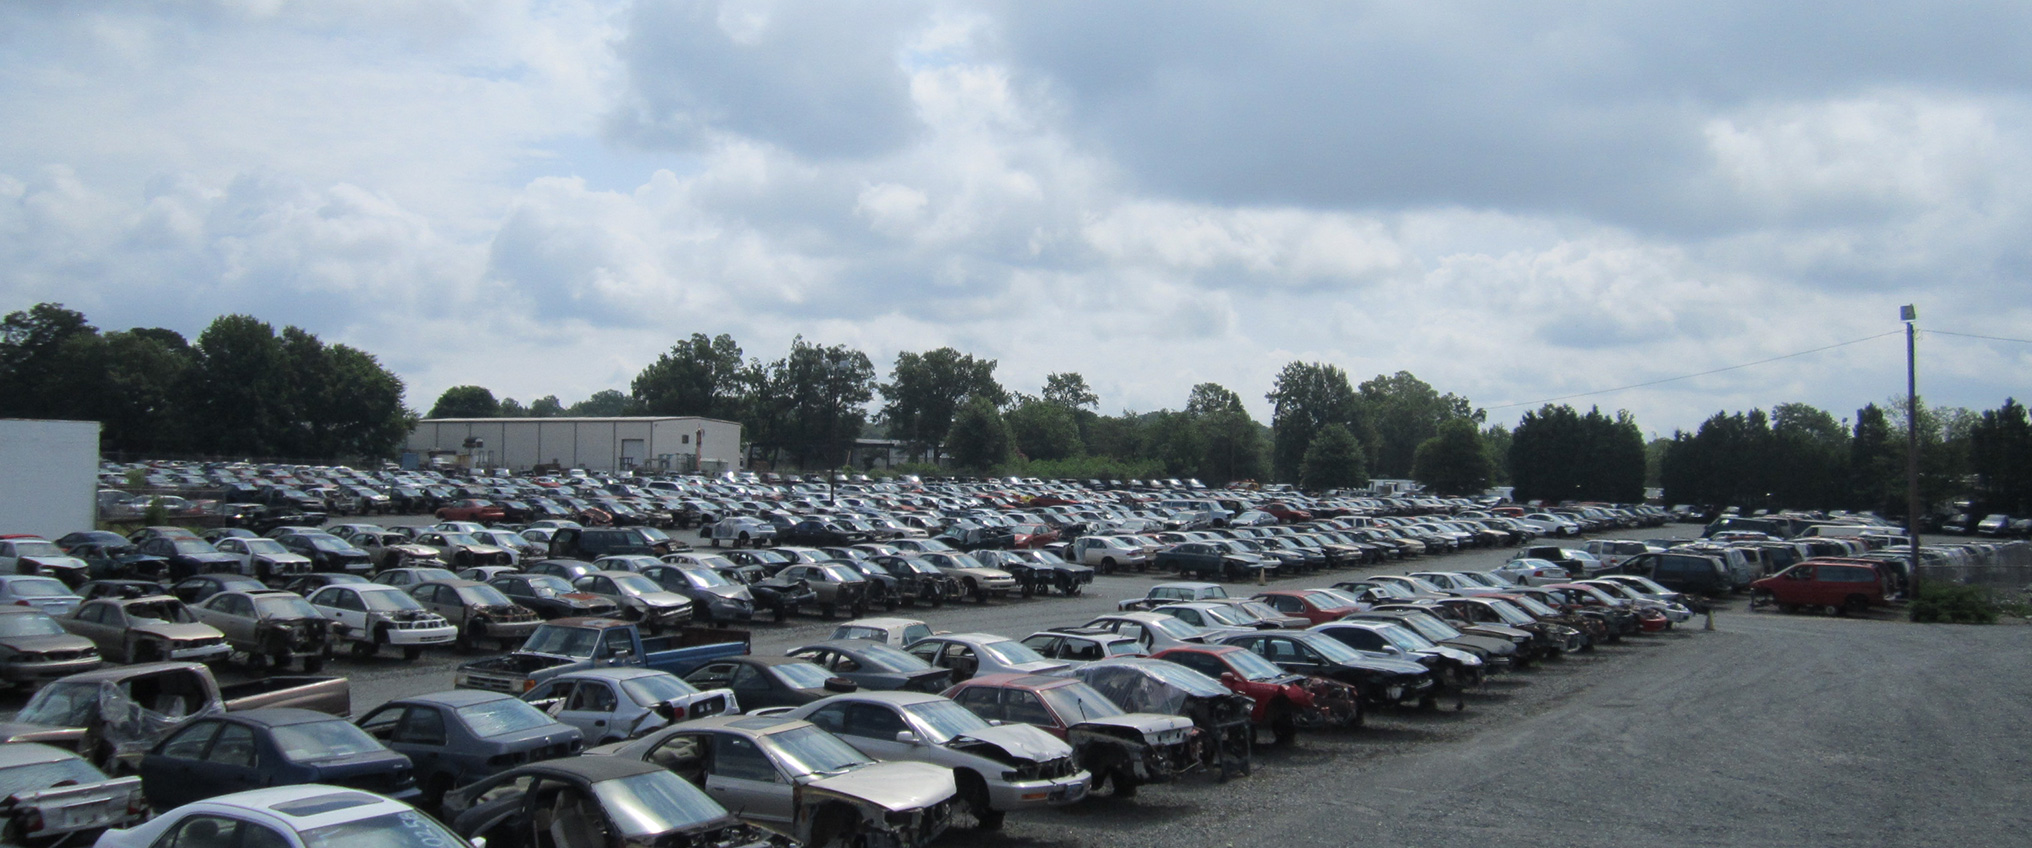 S&R Auto & Truck Salvage: Charlotte, NC: Car, Truck, SUV Salvage Yard